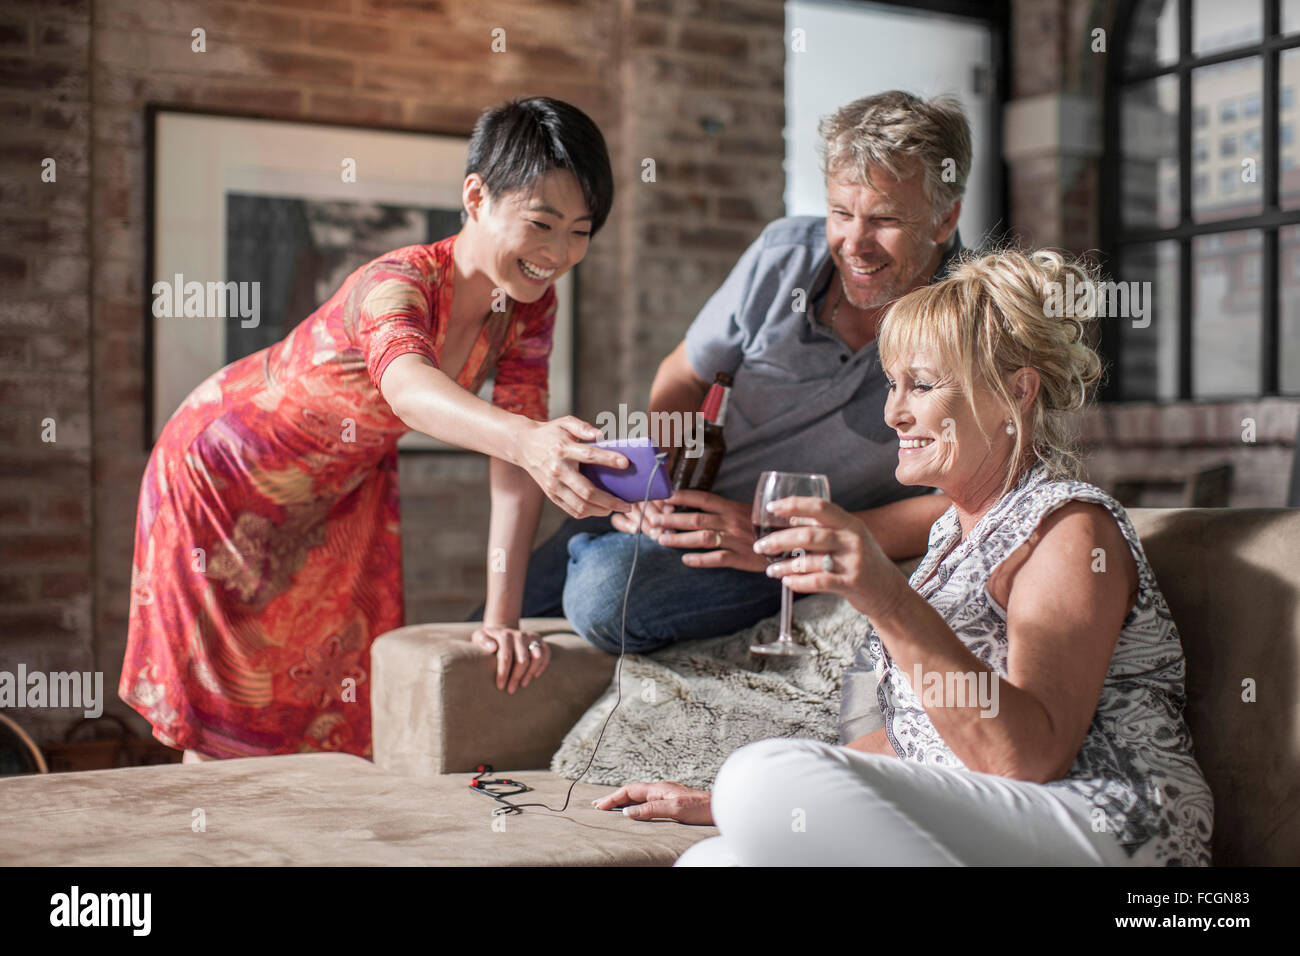 Friends together having a good time looking at cellphone - Stock Image